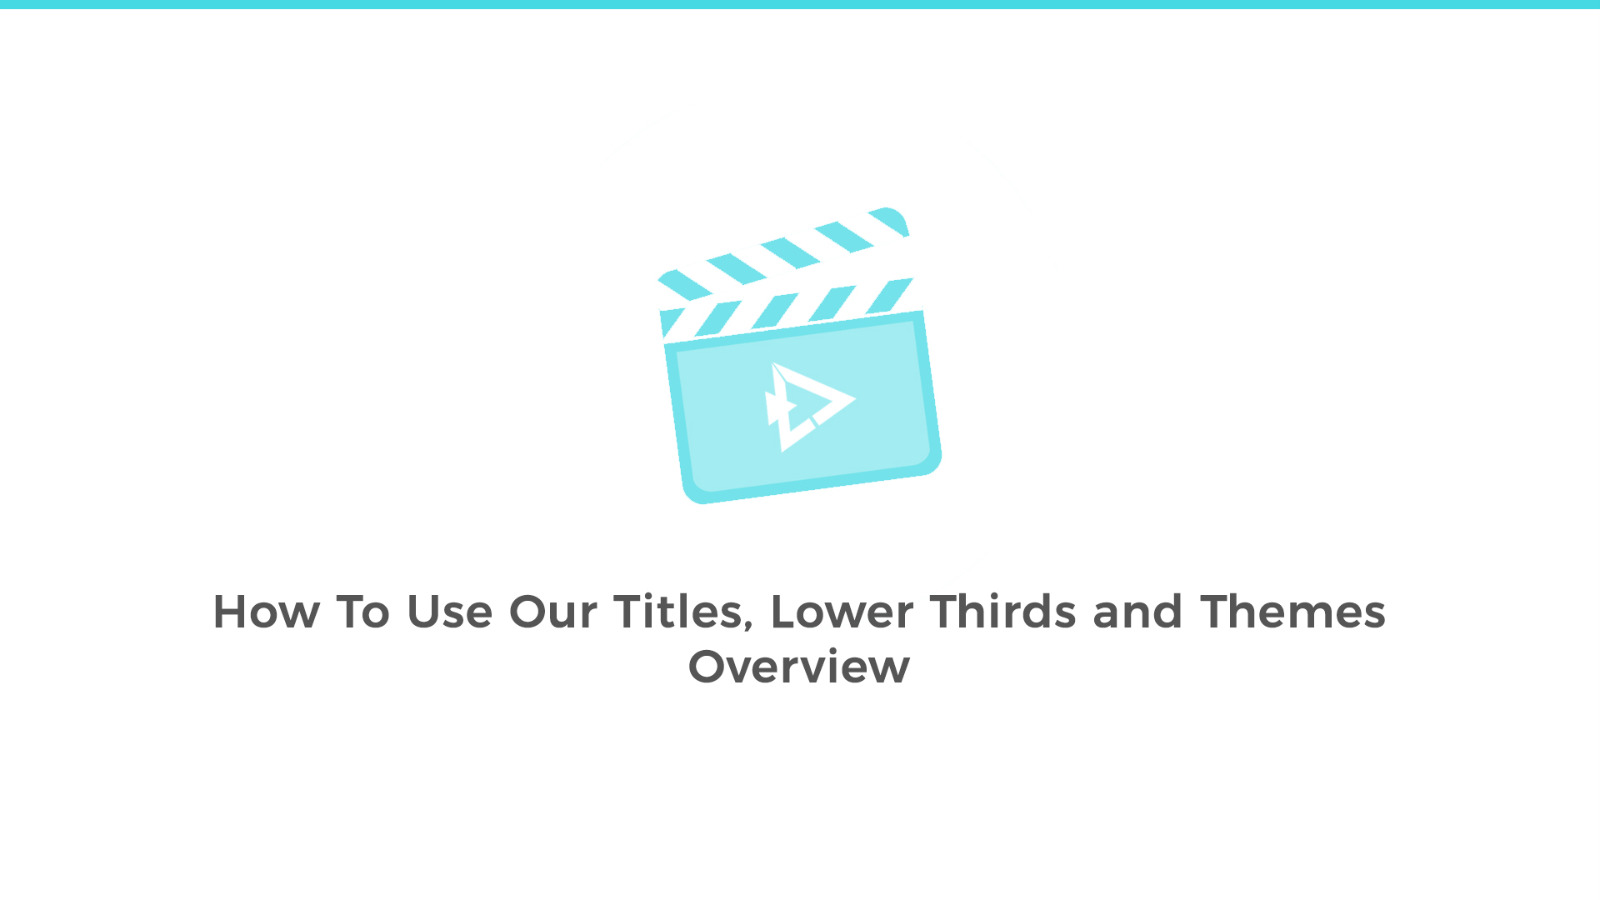 How To Use Our Titles, Lower Thirds and Themes - Overview